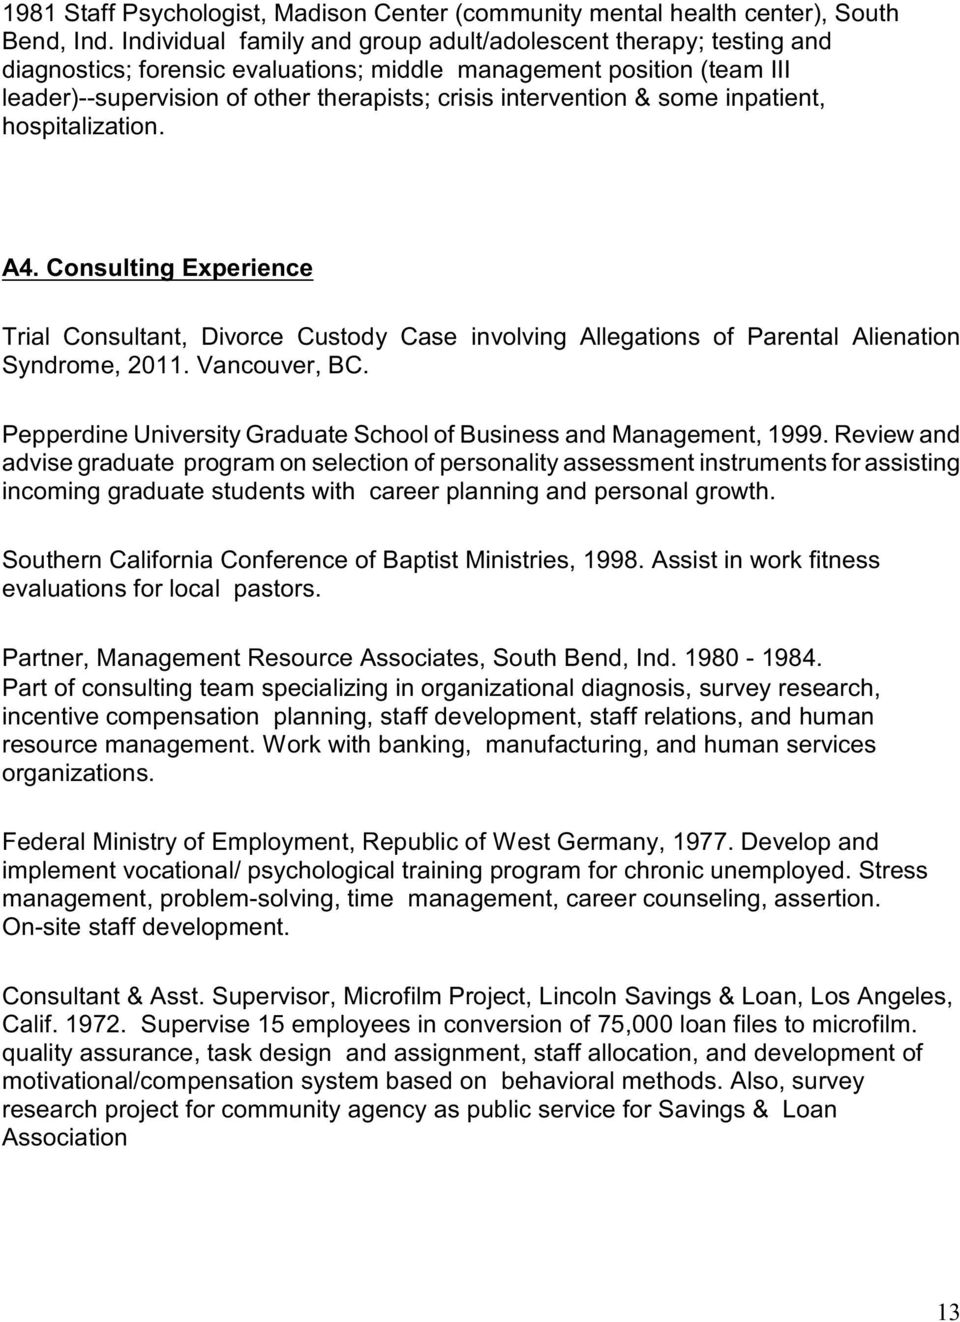 & some inpatient, hospitalization. A4. Consulting Experience Trial Consultant, Divorce Custody Case involving Allegations of Parental Alienation Syndrome, 2011. Vancouver, BC.